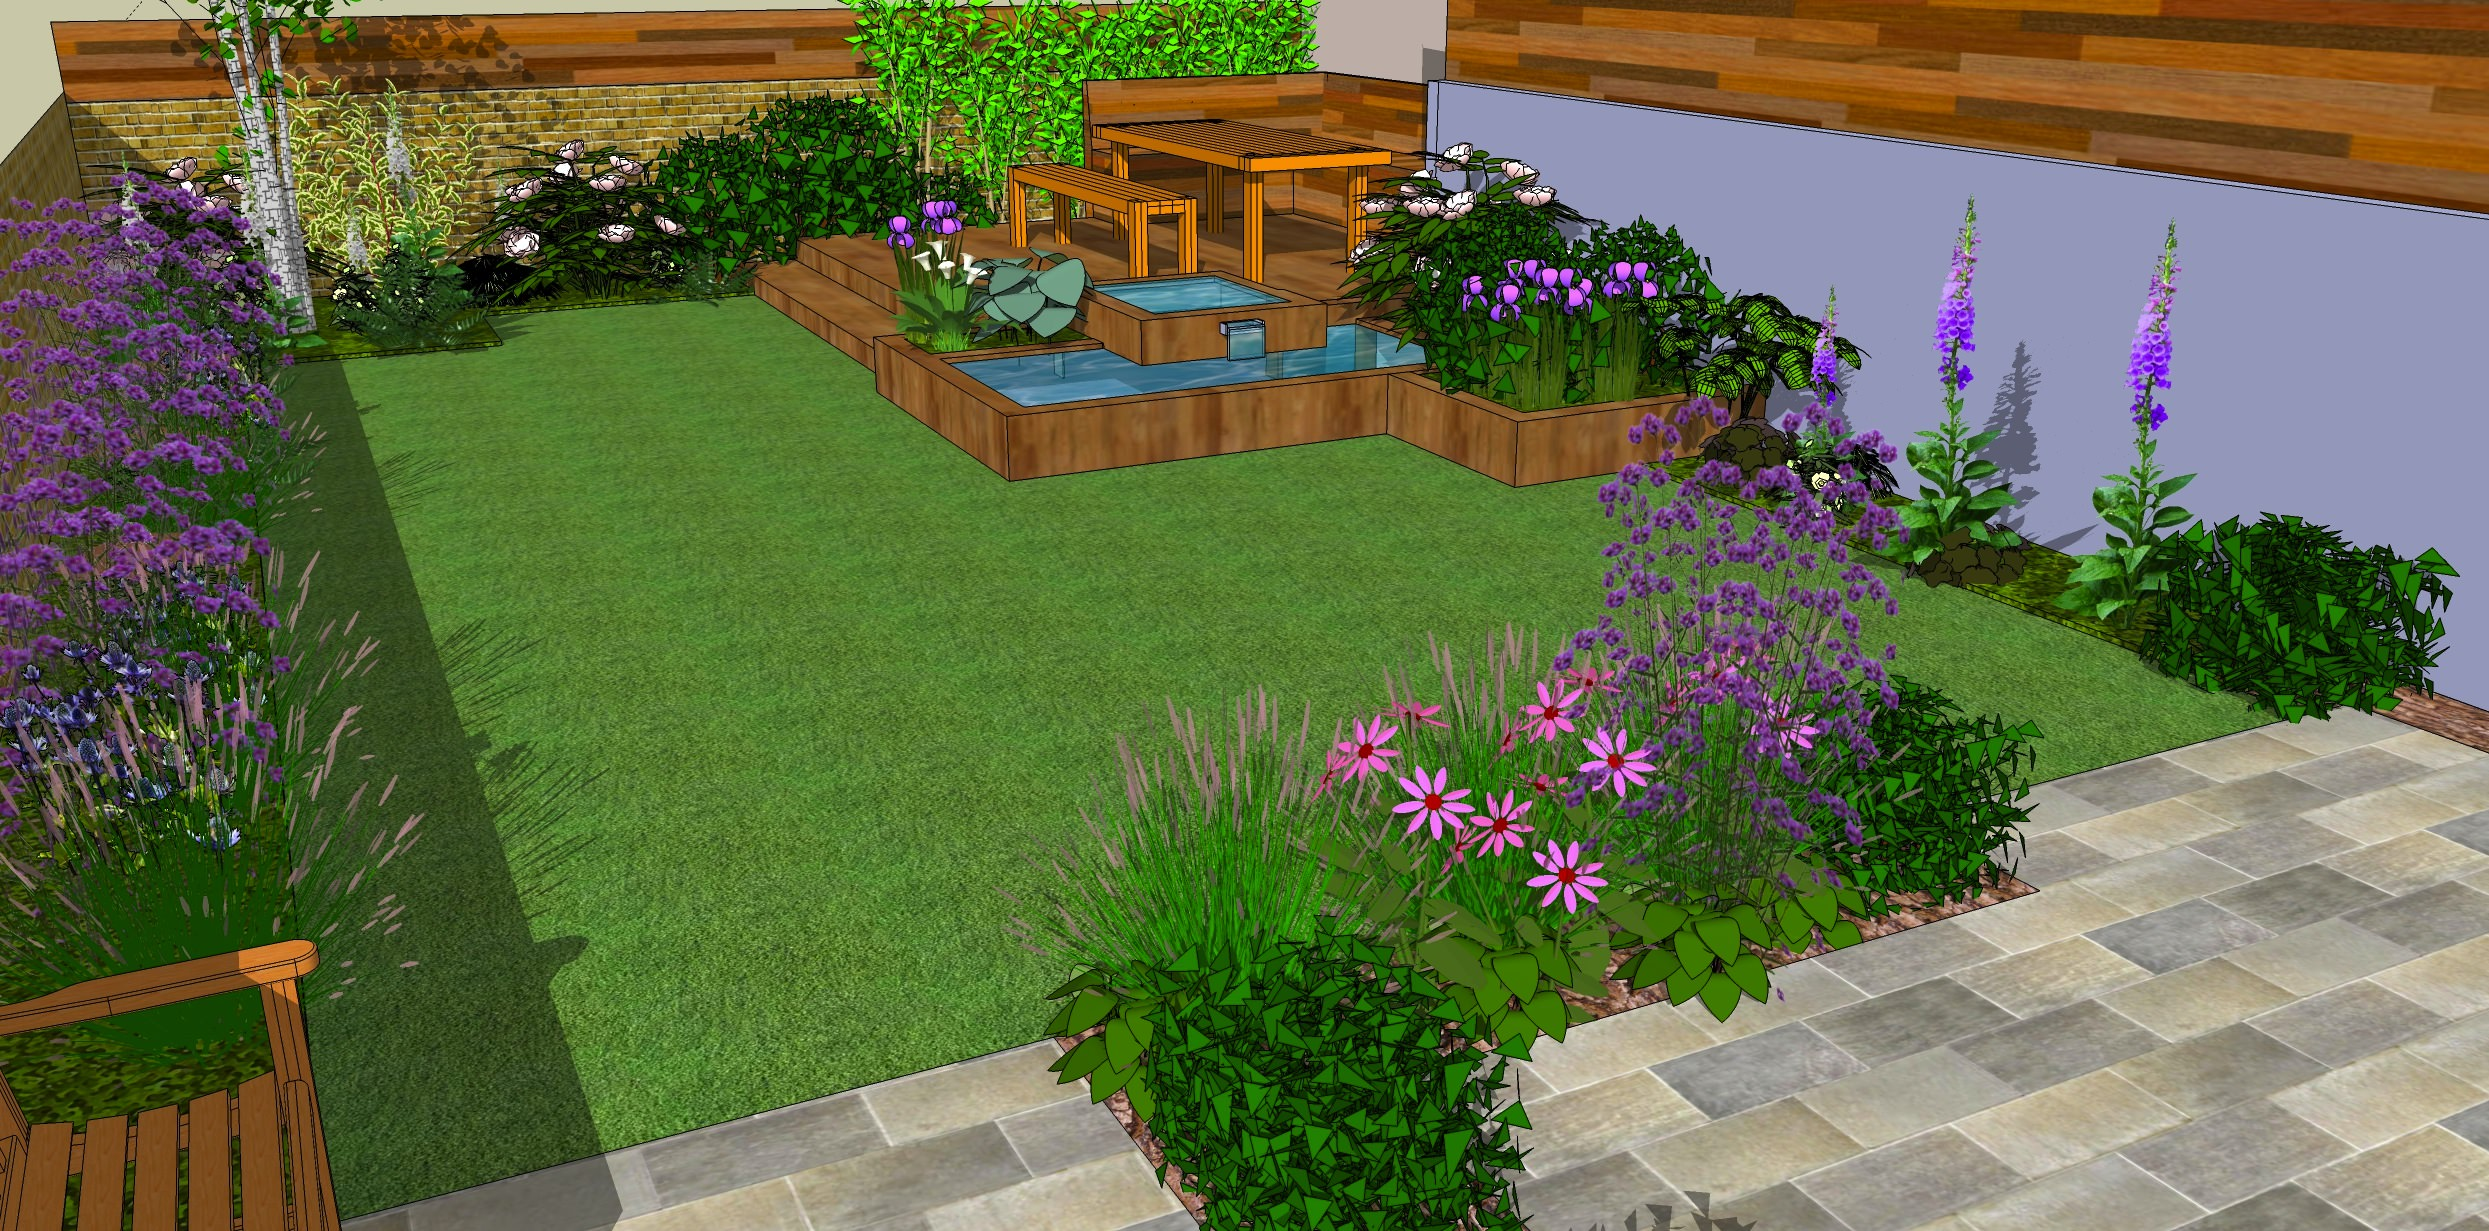 Low maintenance garden designs garden club london for Design and landscape